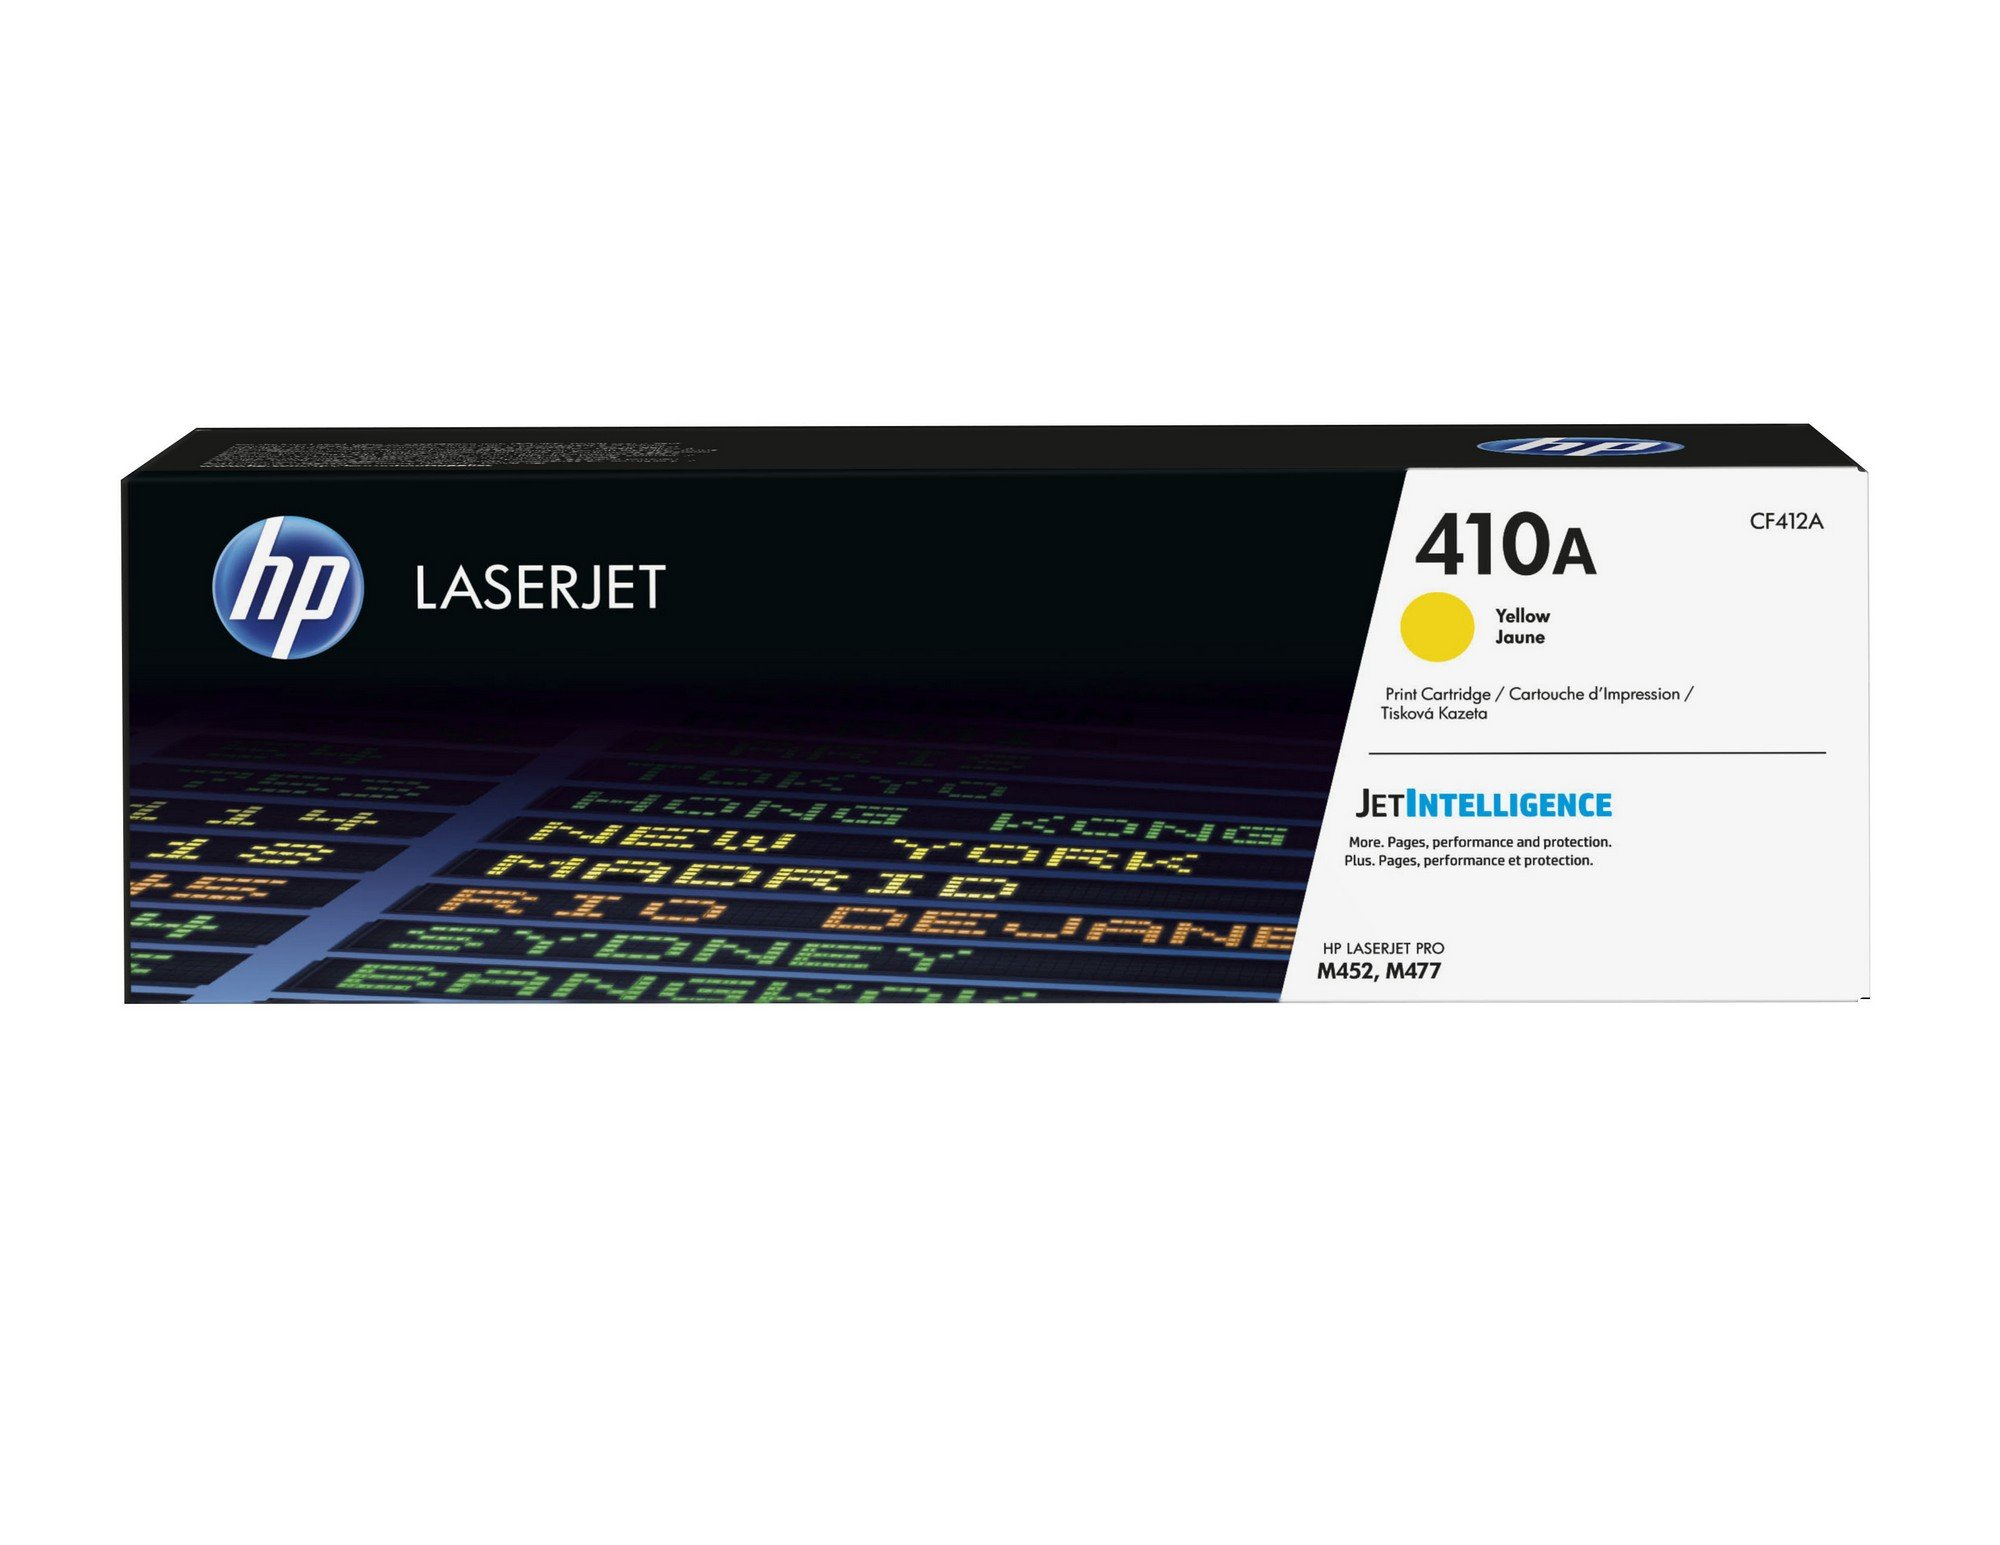 HP 410A (CF412A) Toner Cartridge, Yellow for HP Color LaserJet Pro M452dn, M452dw, M452nw, MFP M377dw, MFP M477fdn, MFP M477fdw, MFP M477fnw